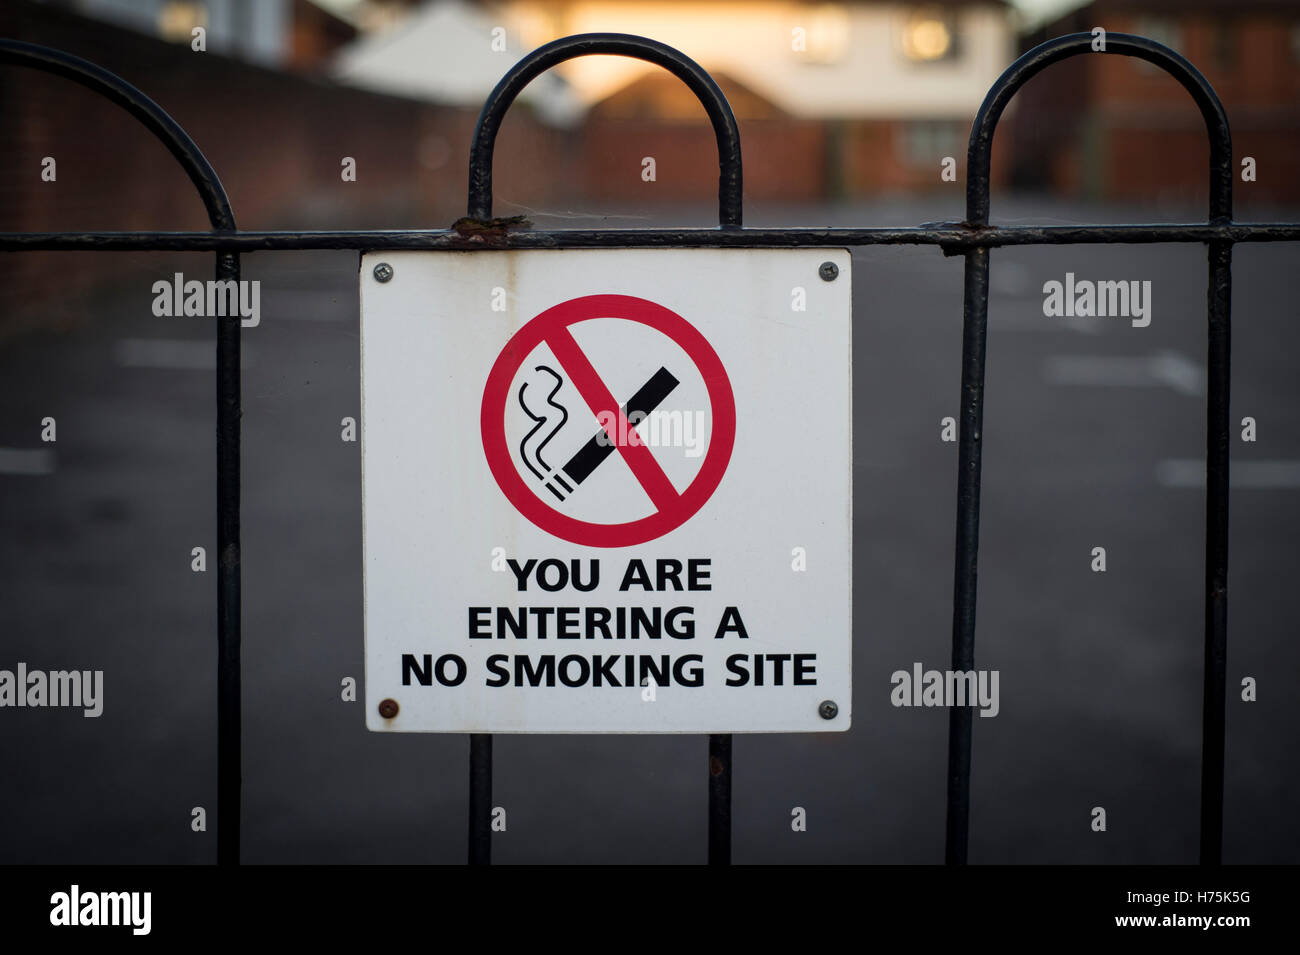 you are entering a no smoking site, sign on a fence - Stock Image